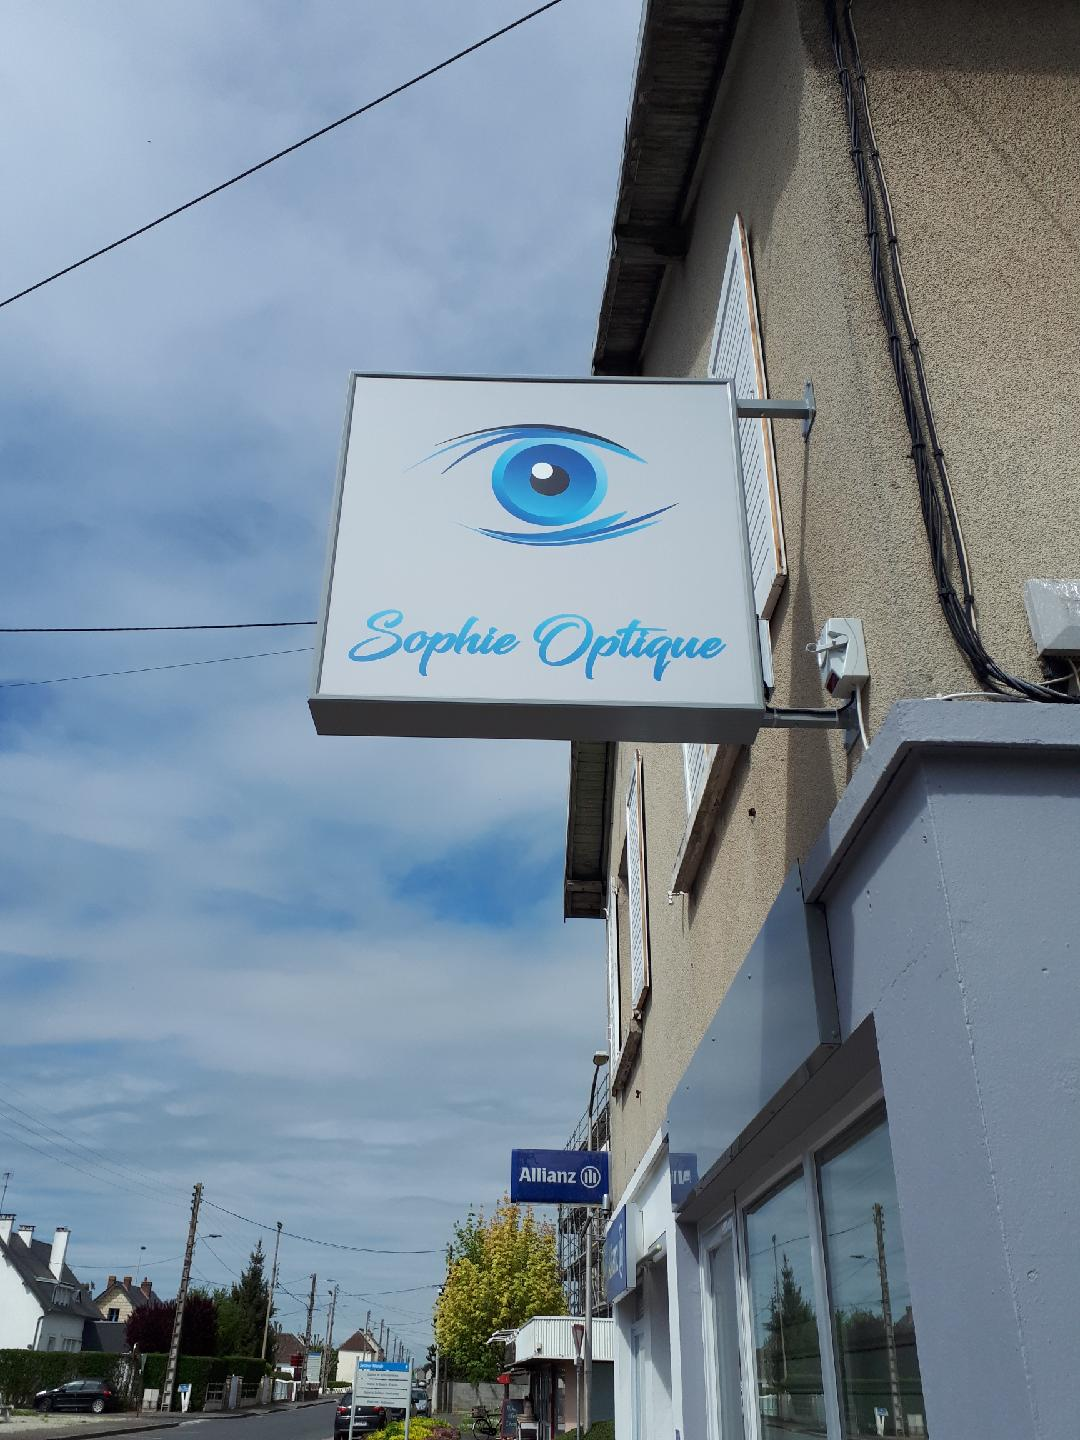 Opticien : SOPHIE OPTIQUE, 140 AVENUE JEAN JAURES, 14270 MEZIDON VALLEE D'AUGE